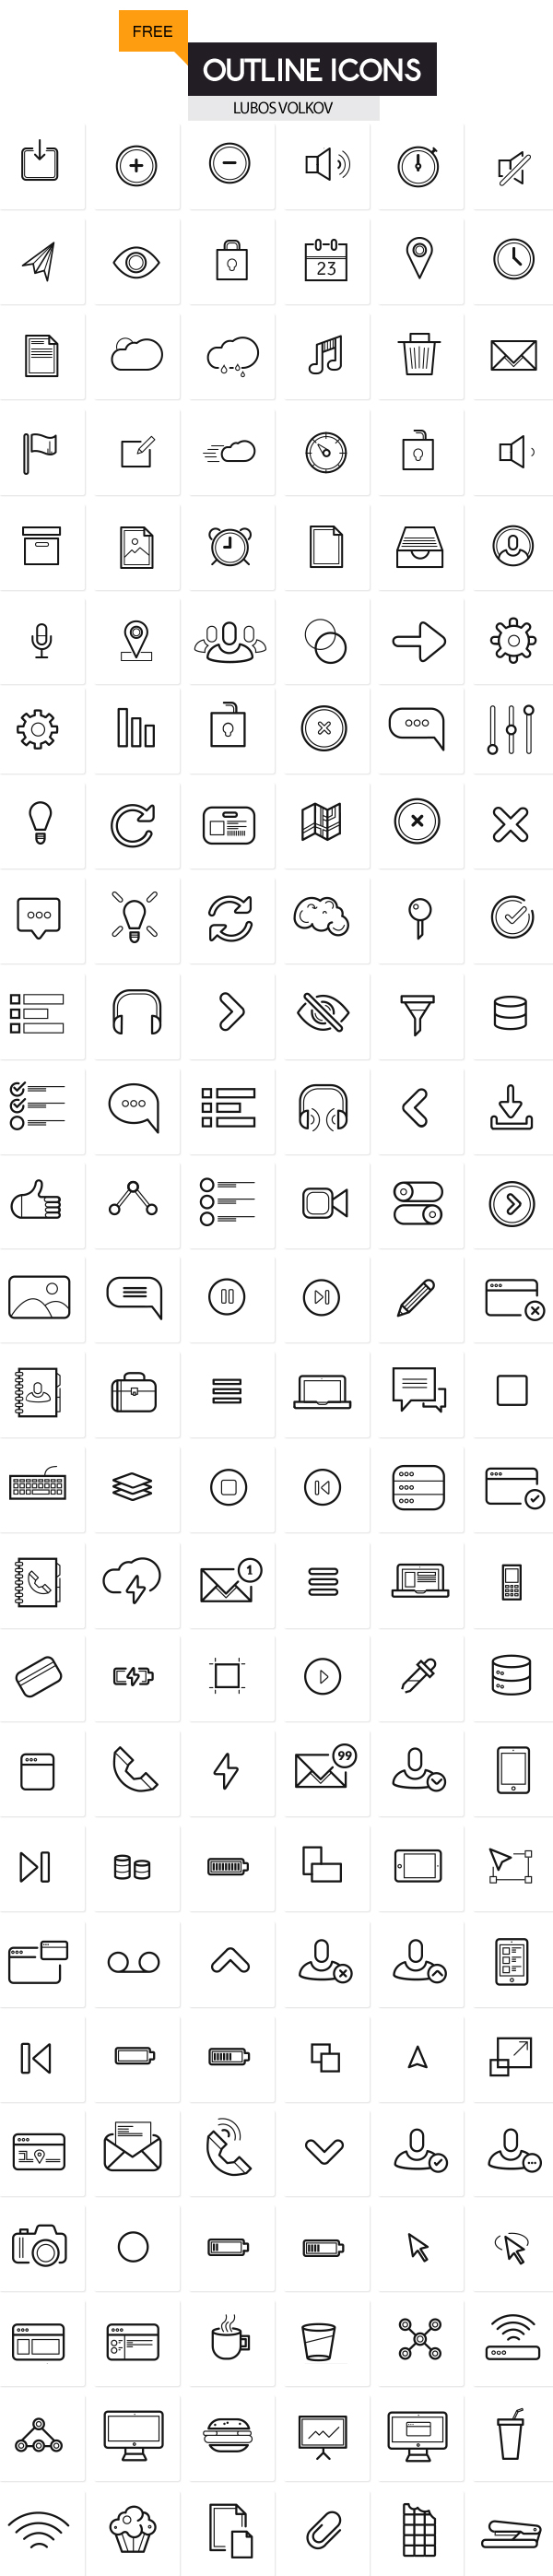 Outline Icons Set (200 free icons)